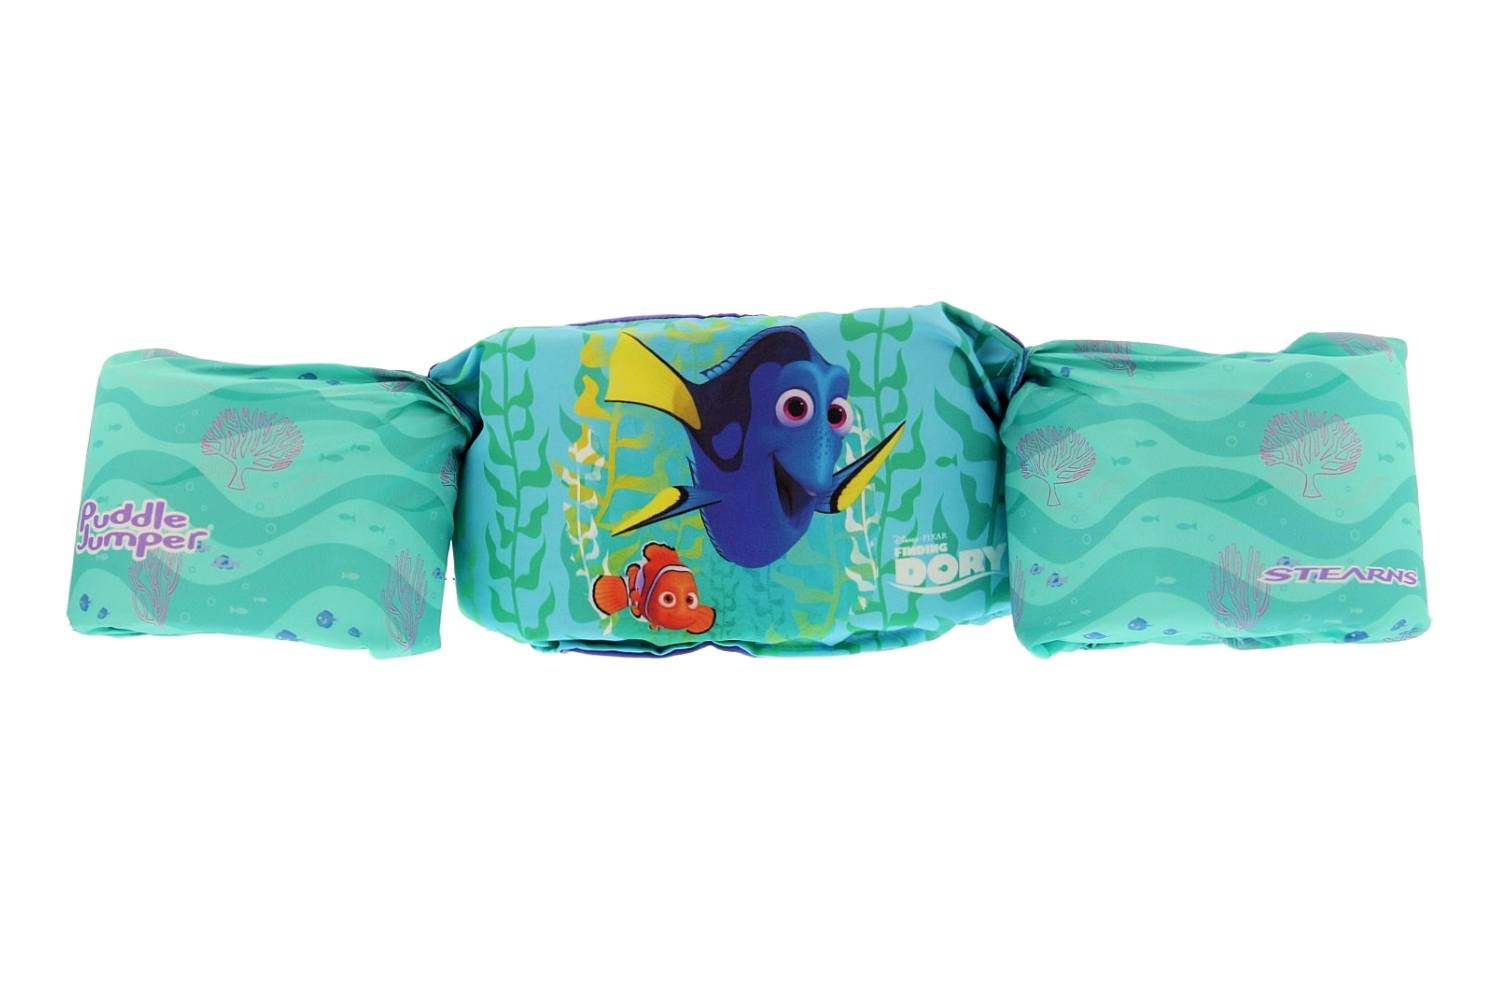 Stearns Original Puddle Jumper Deluxe Child Life Jacket, Fits 30-50 lbs by Stearns